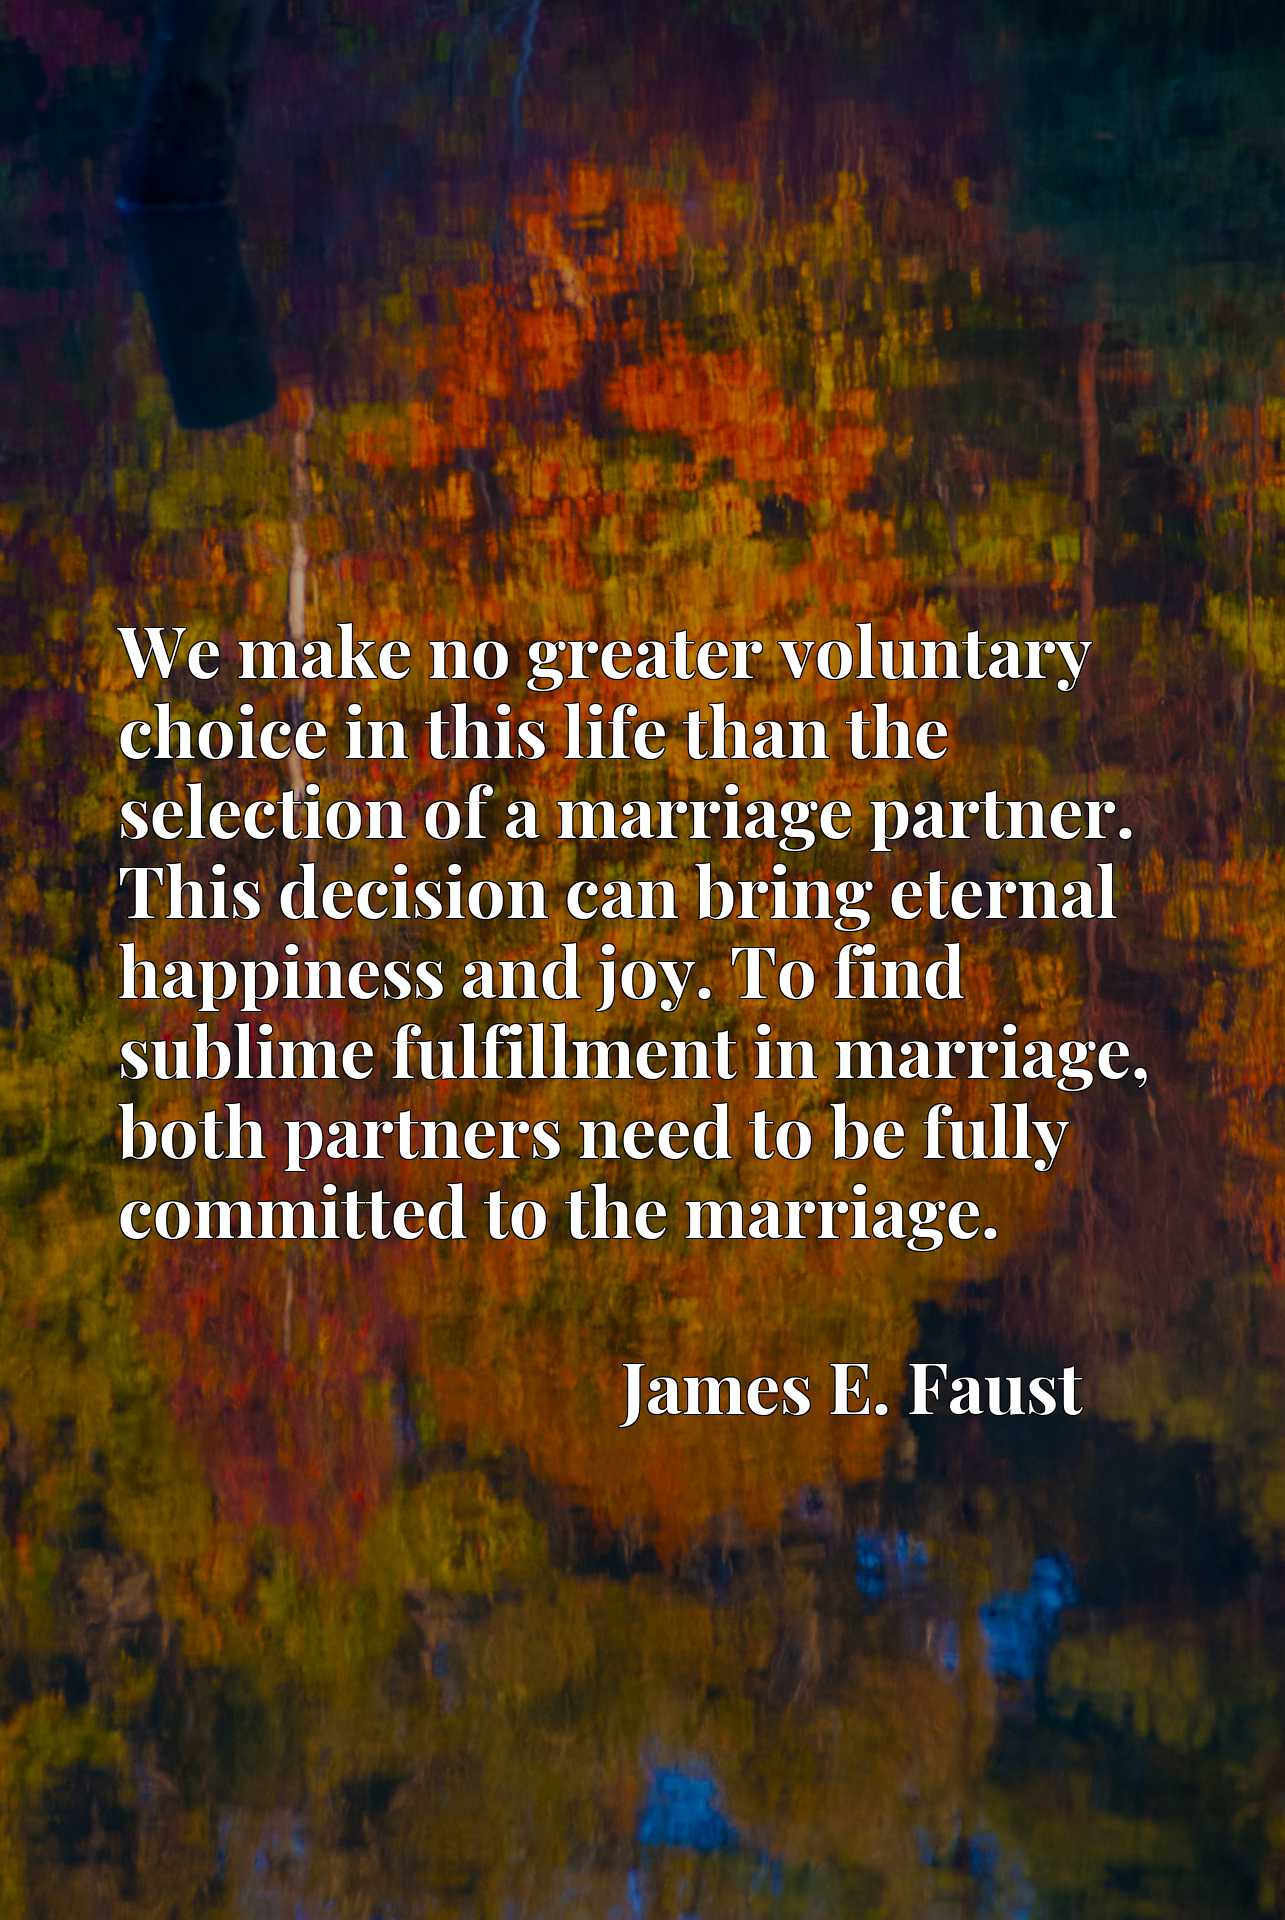 We make no greater voluntary choice in this life than the selection of a marriage partner. This decision can bring eternal happiness and joy. To find sublime fulfillment in marriage, both partners need to be fully committed to the marriage.